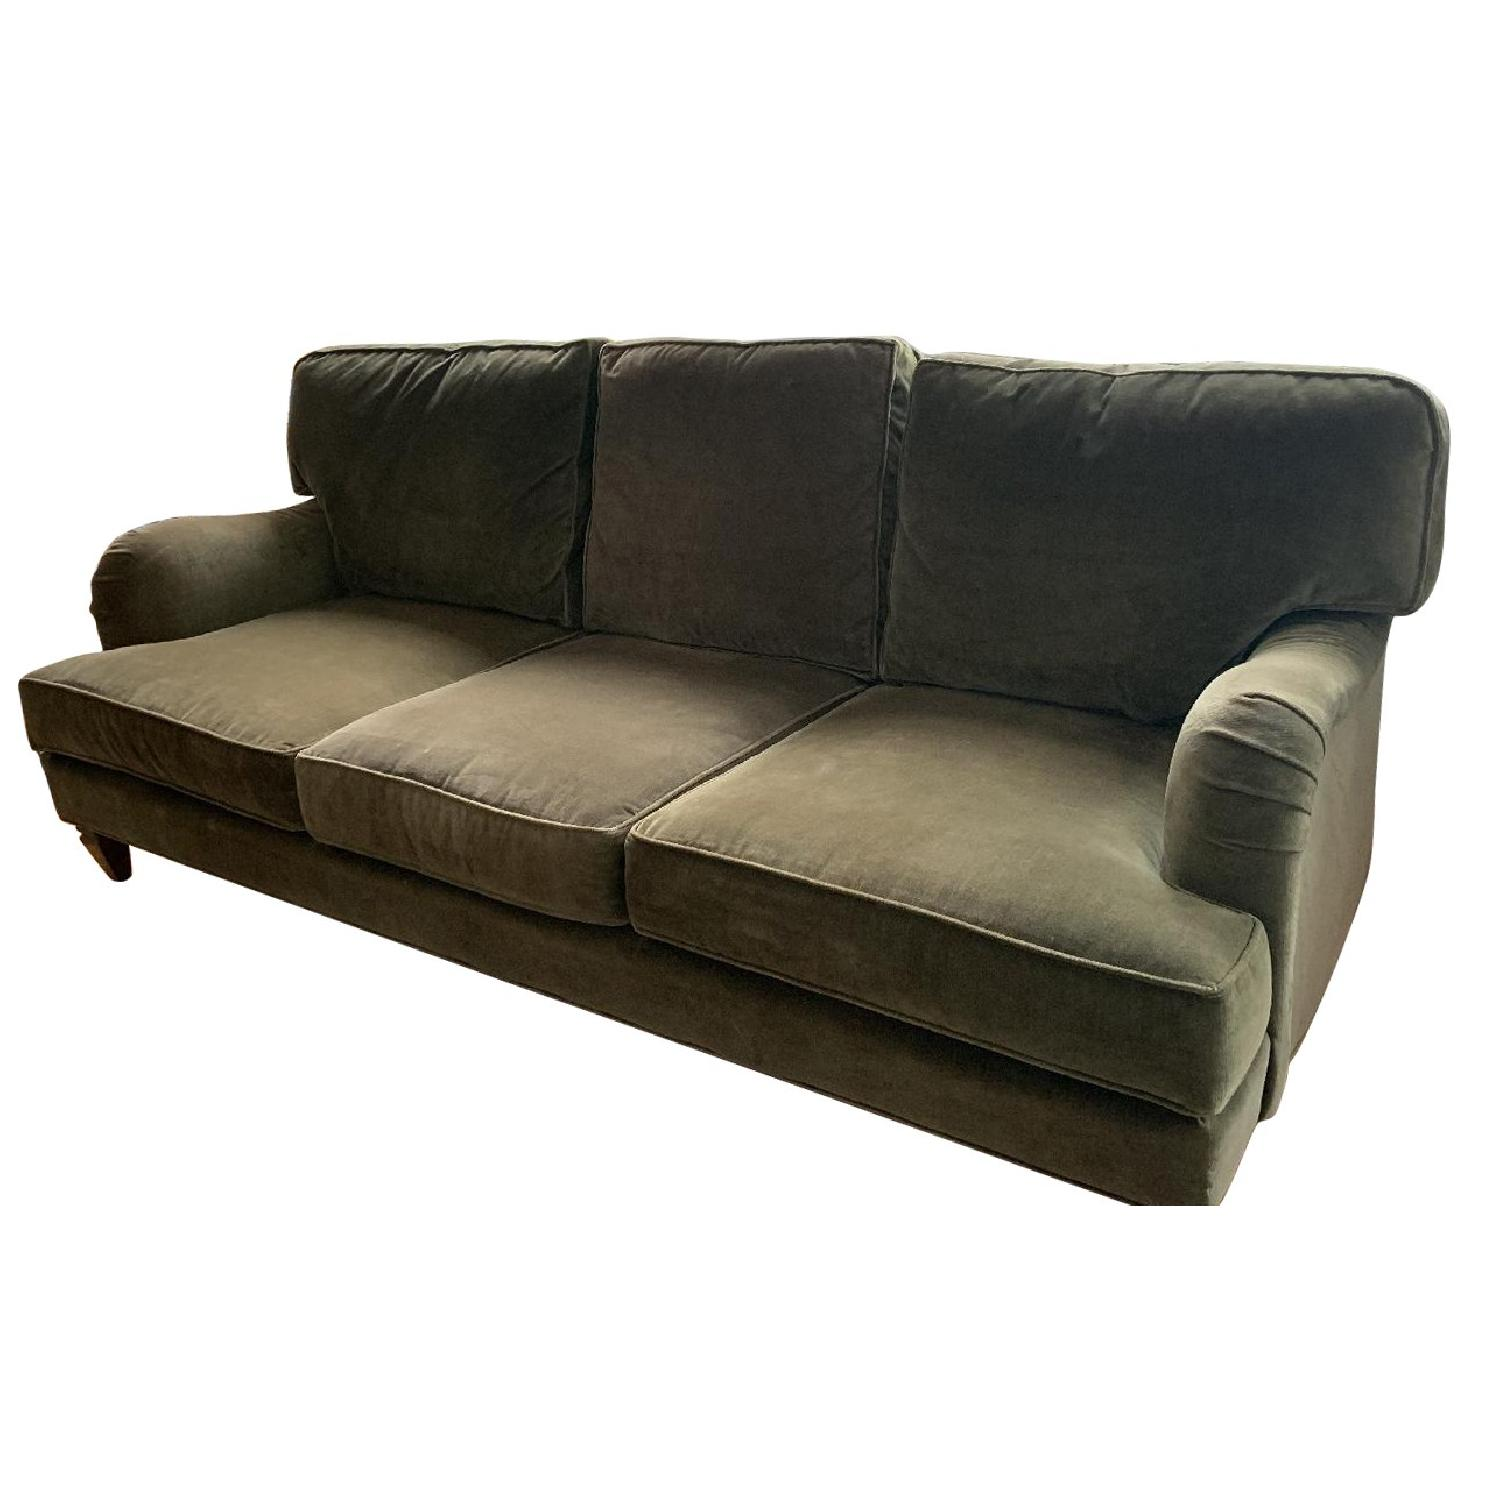 Cococo Home English Arm Green Jade Velvet Sofa